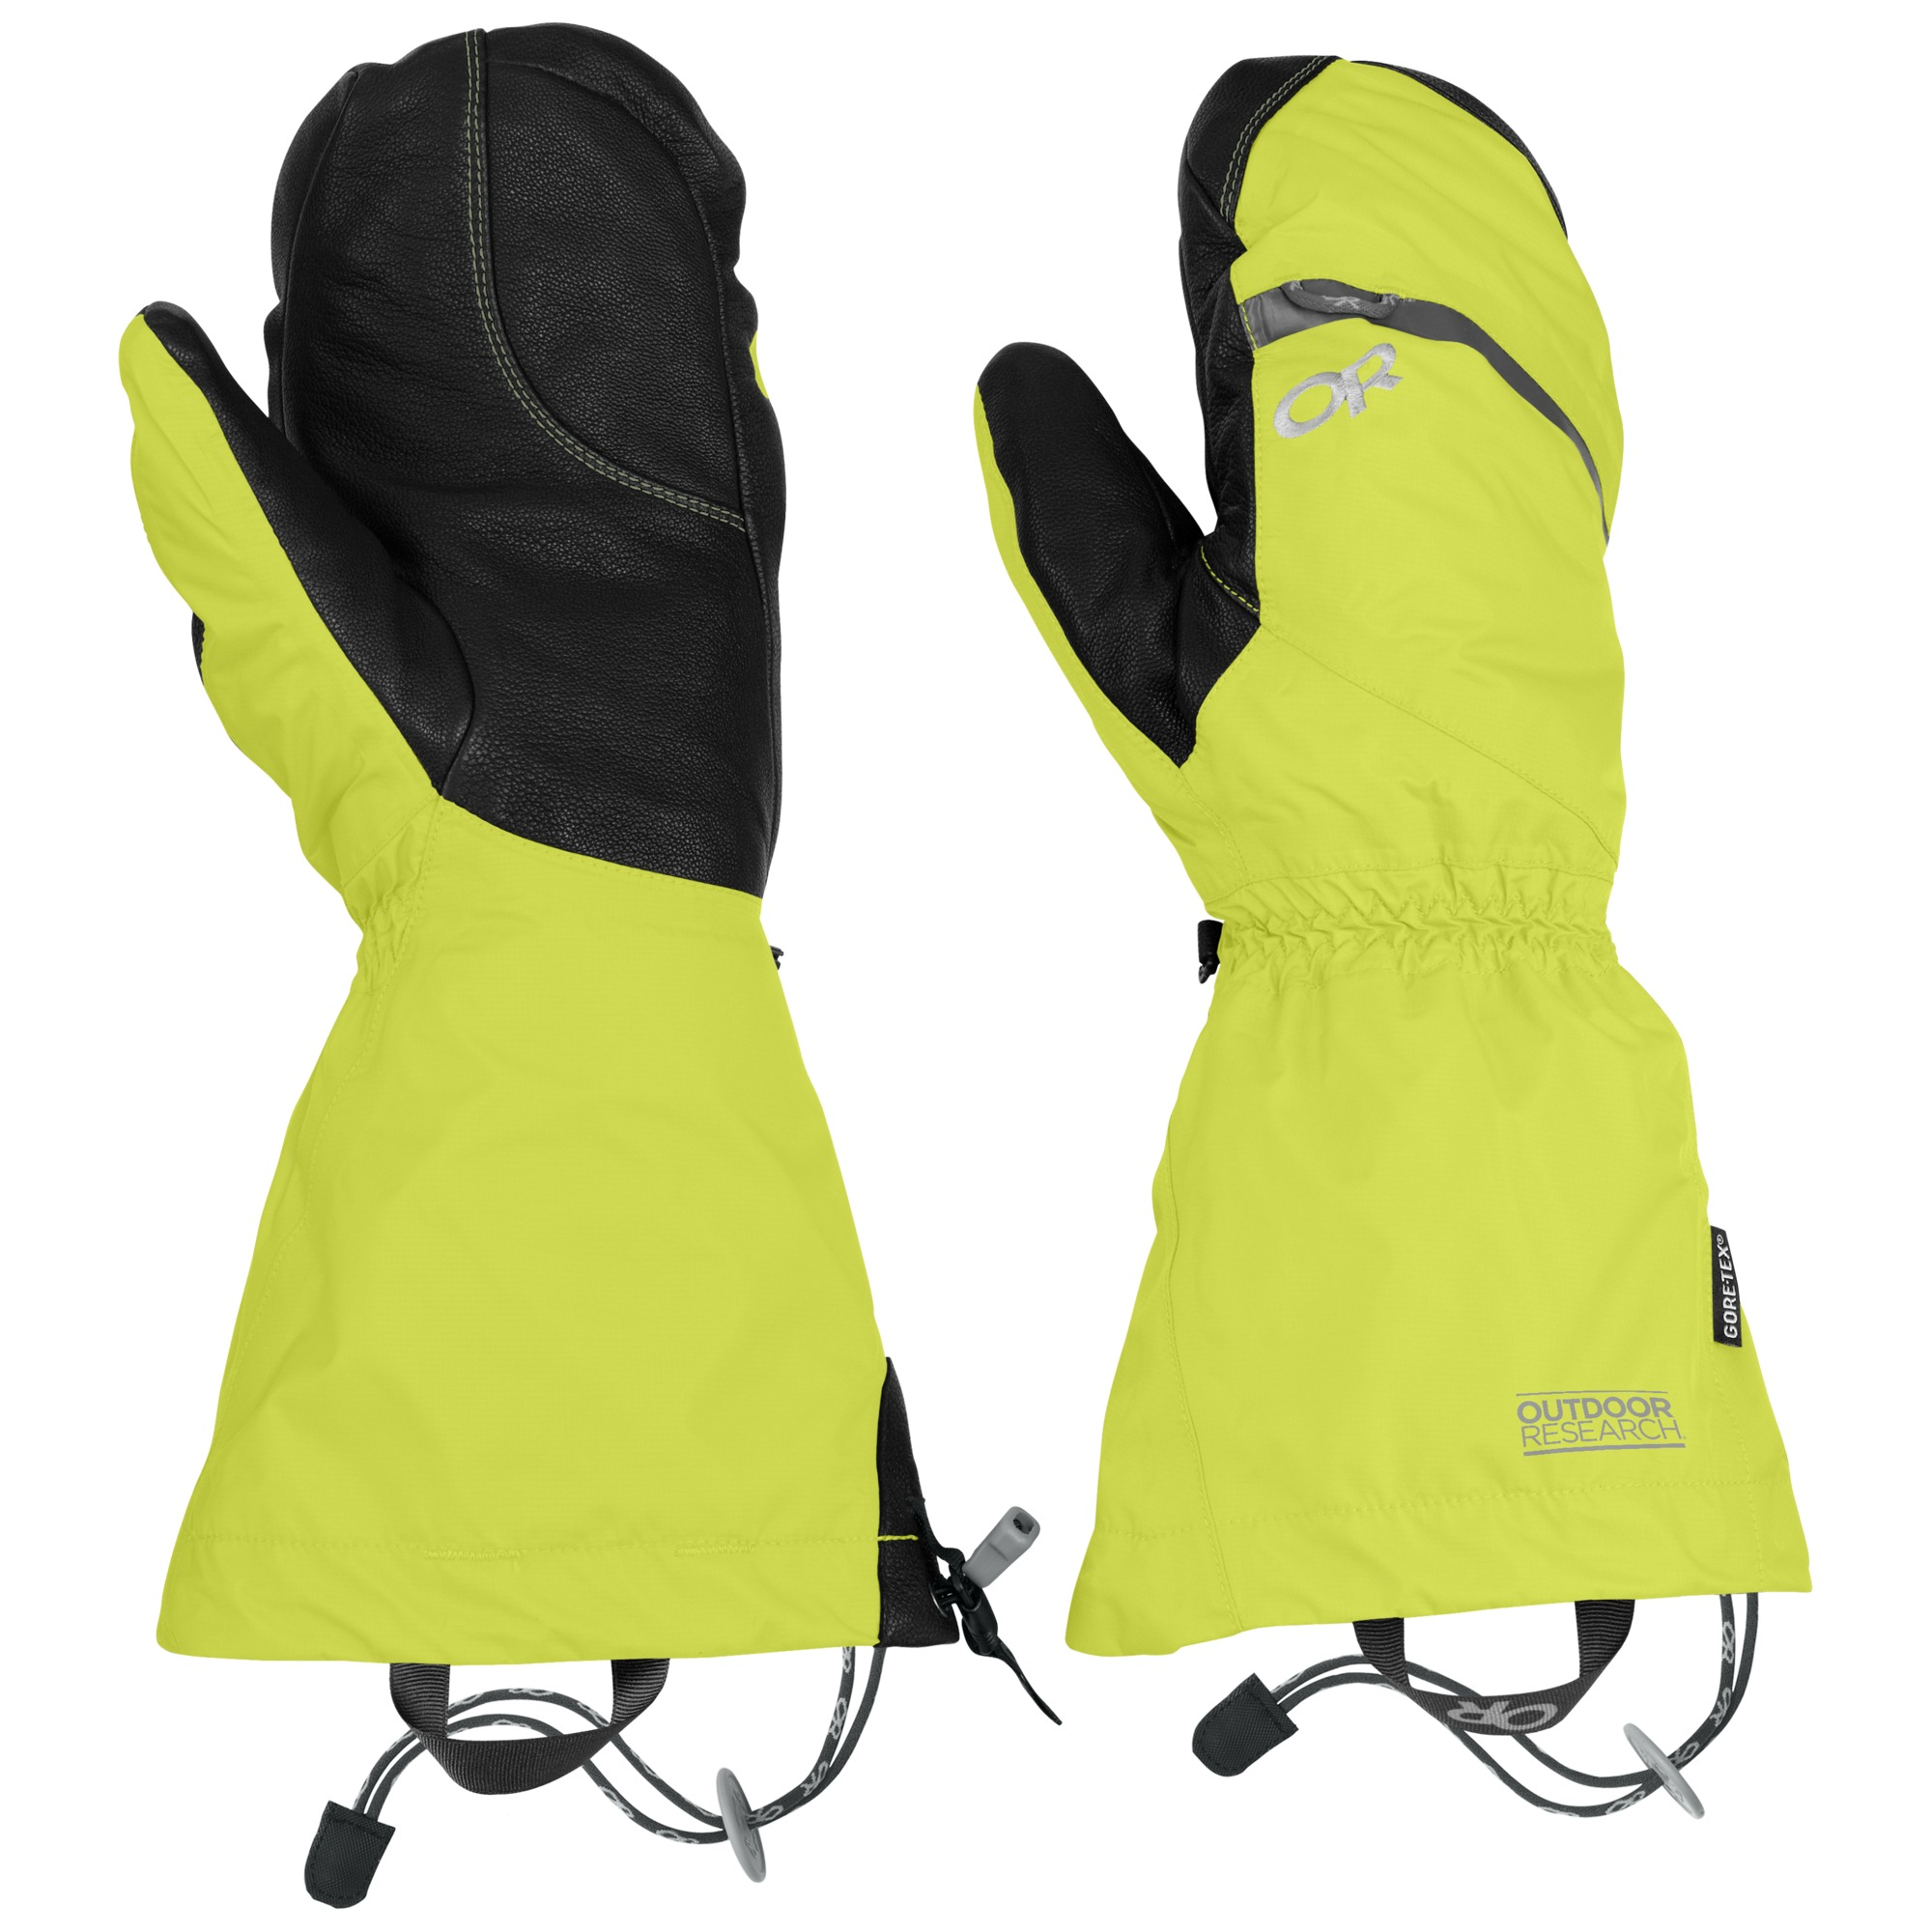 a6b370b32 Men's Alti Mitts - lemongrass | Outdoor Research